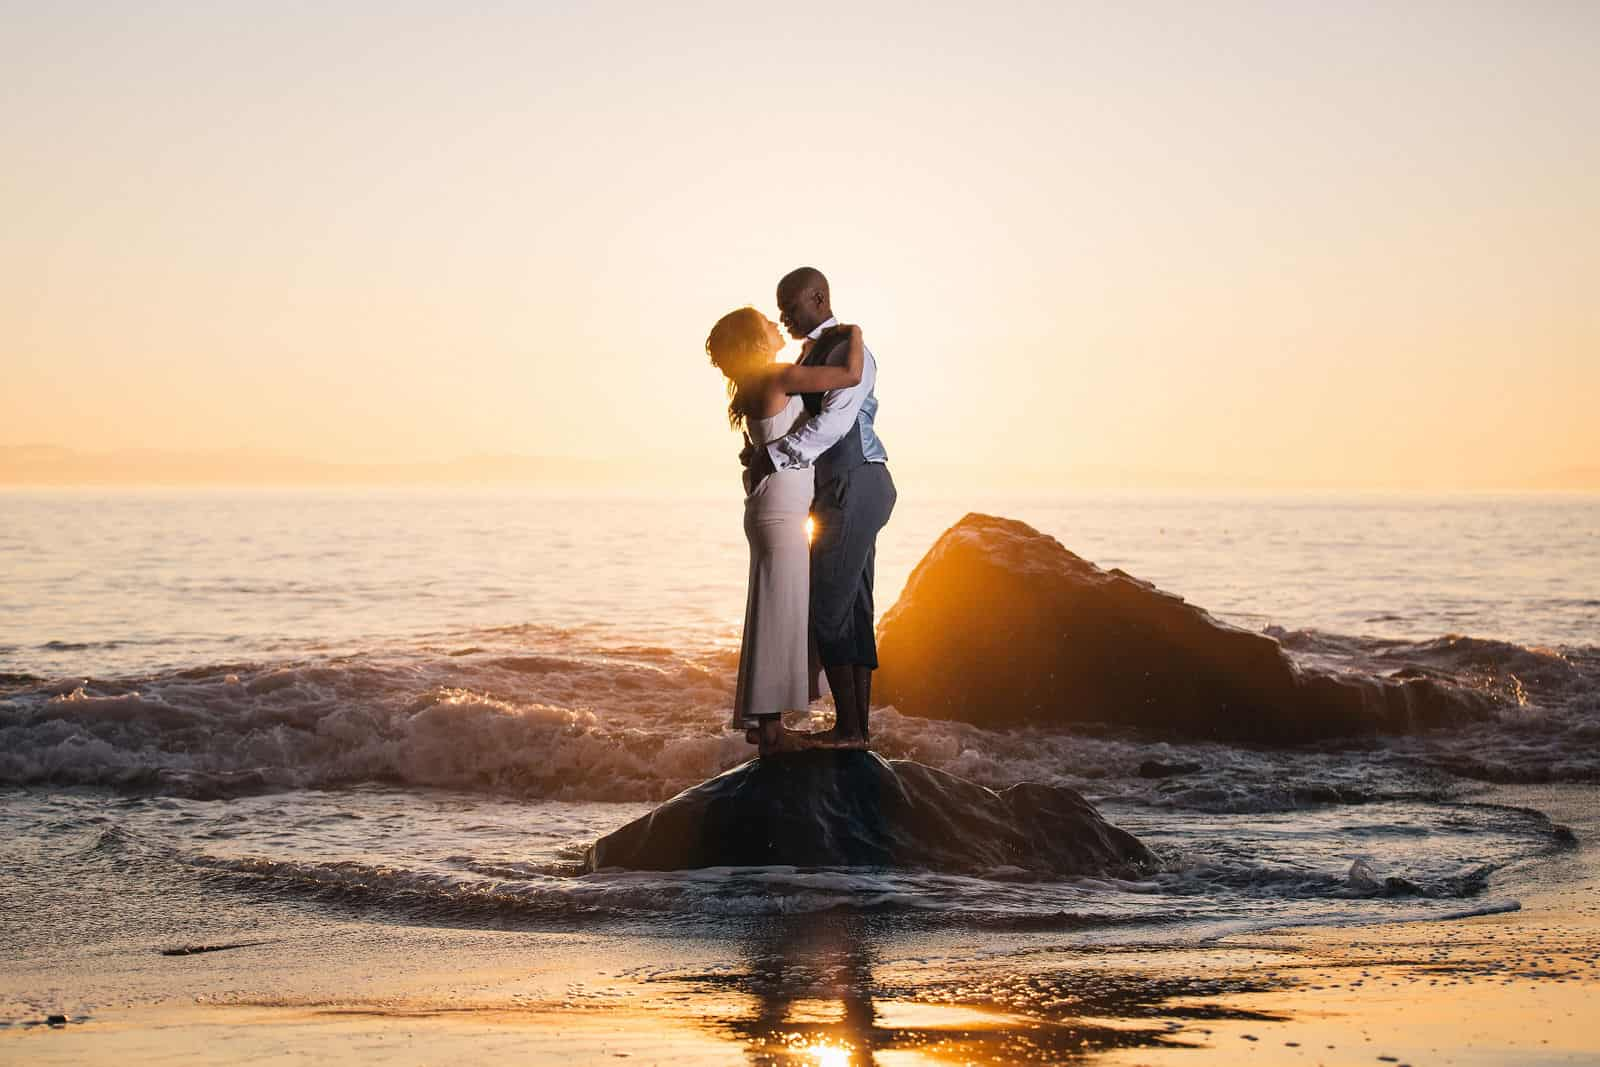 A newlywed couple embraces in the evening light by the ocean.